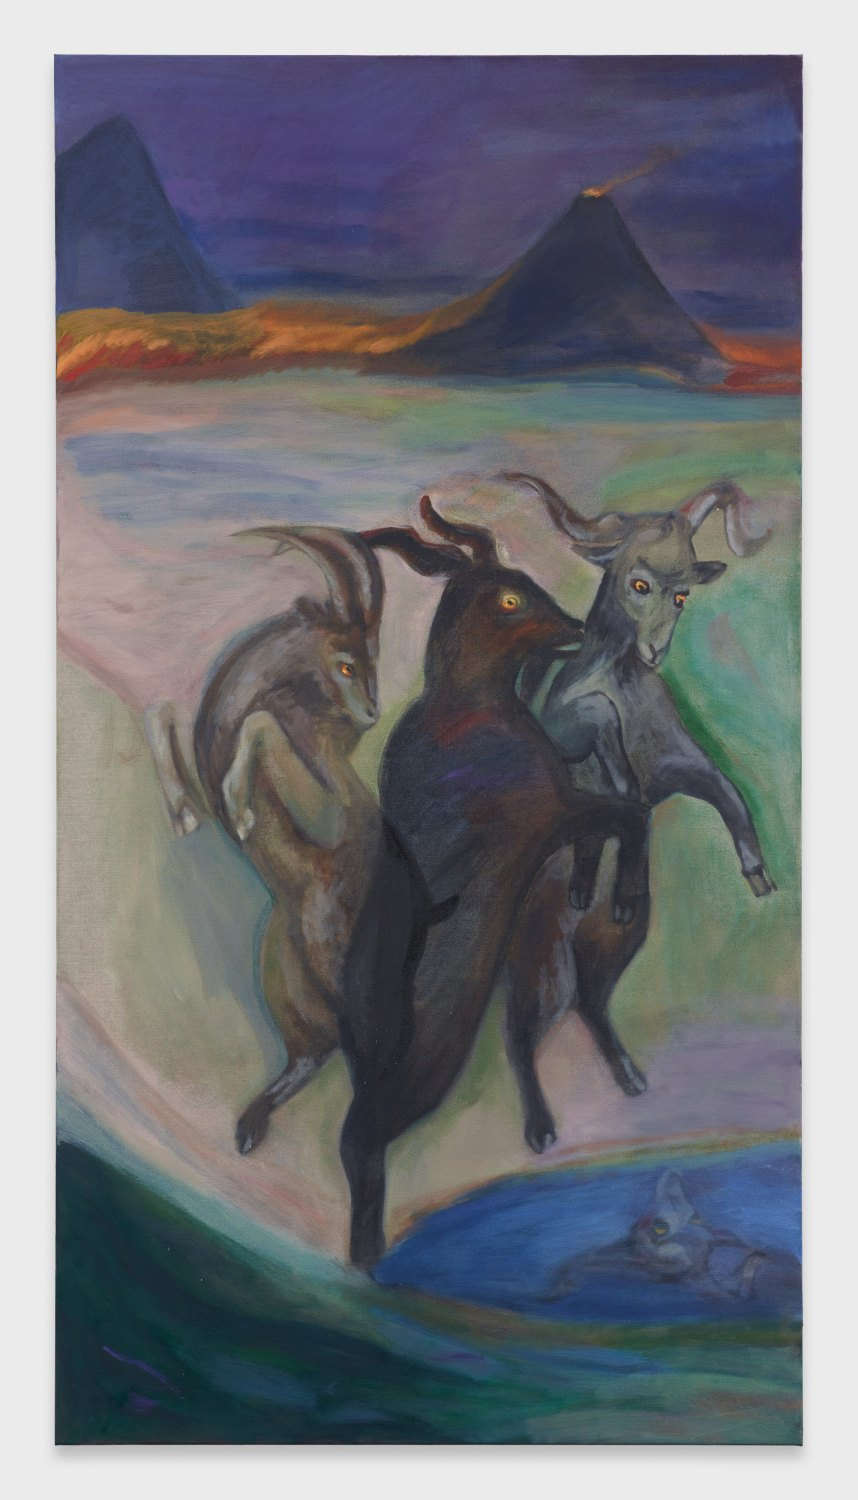 Jill Mulleady Exterior with Goats, 2019 Oil on linen, 168 x 90 cm